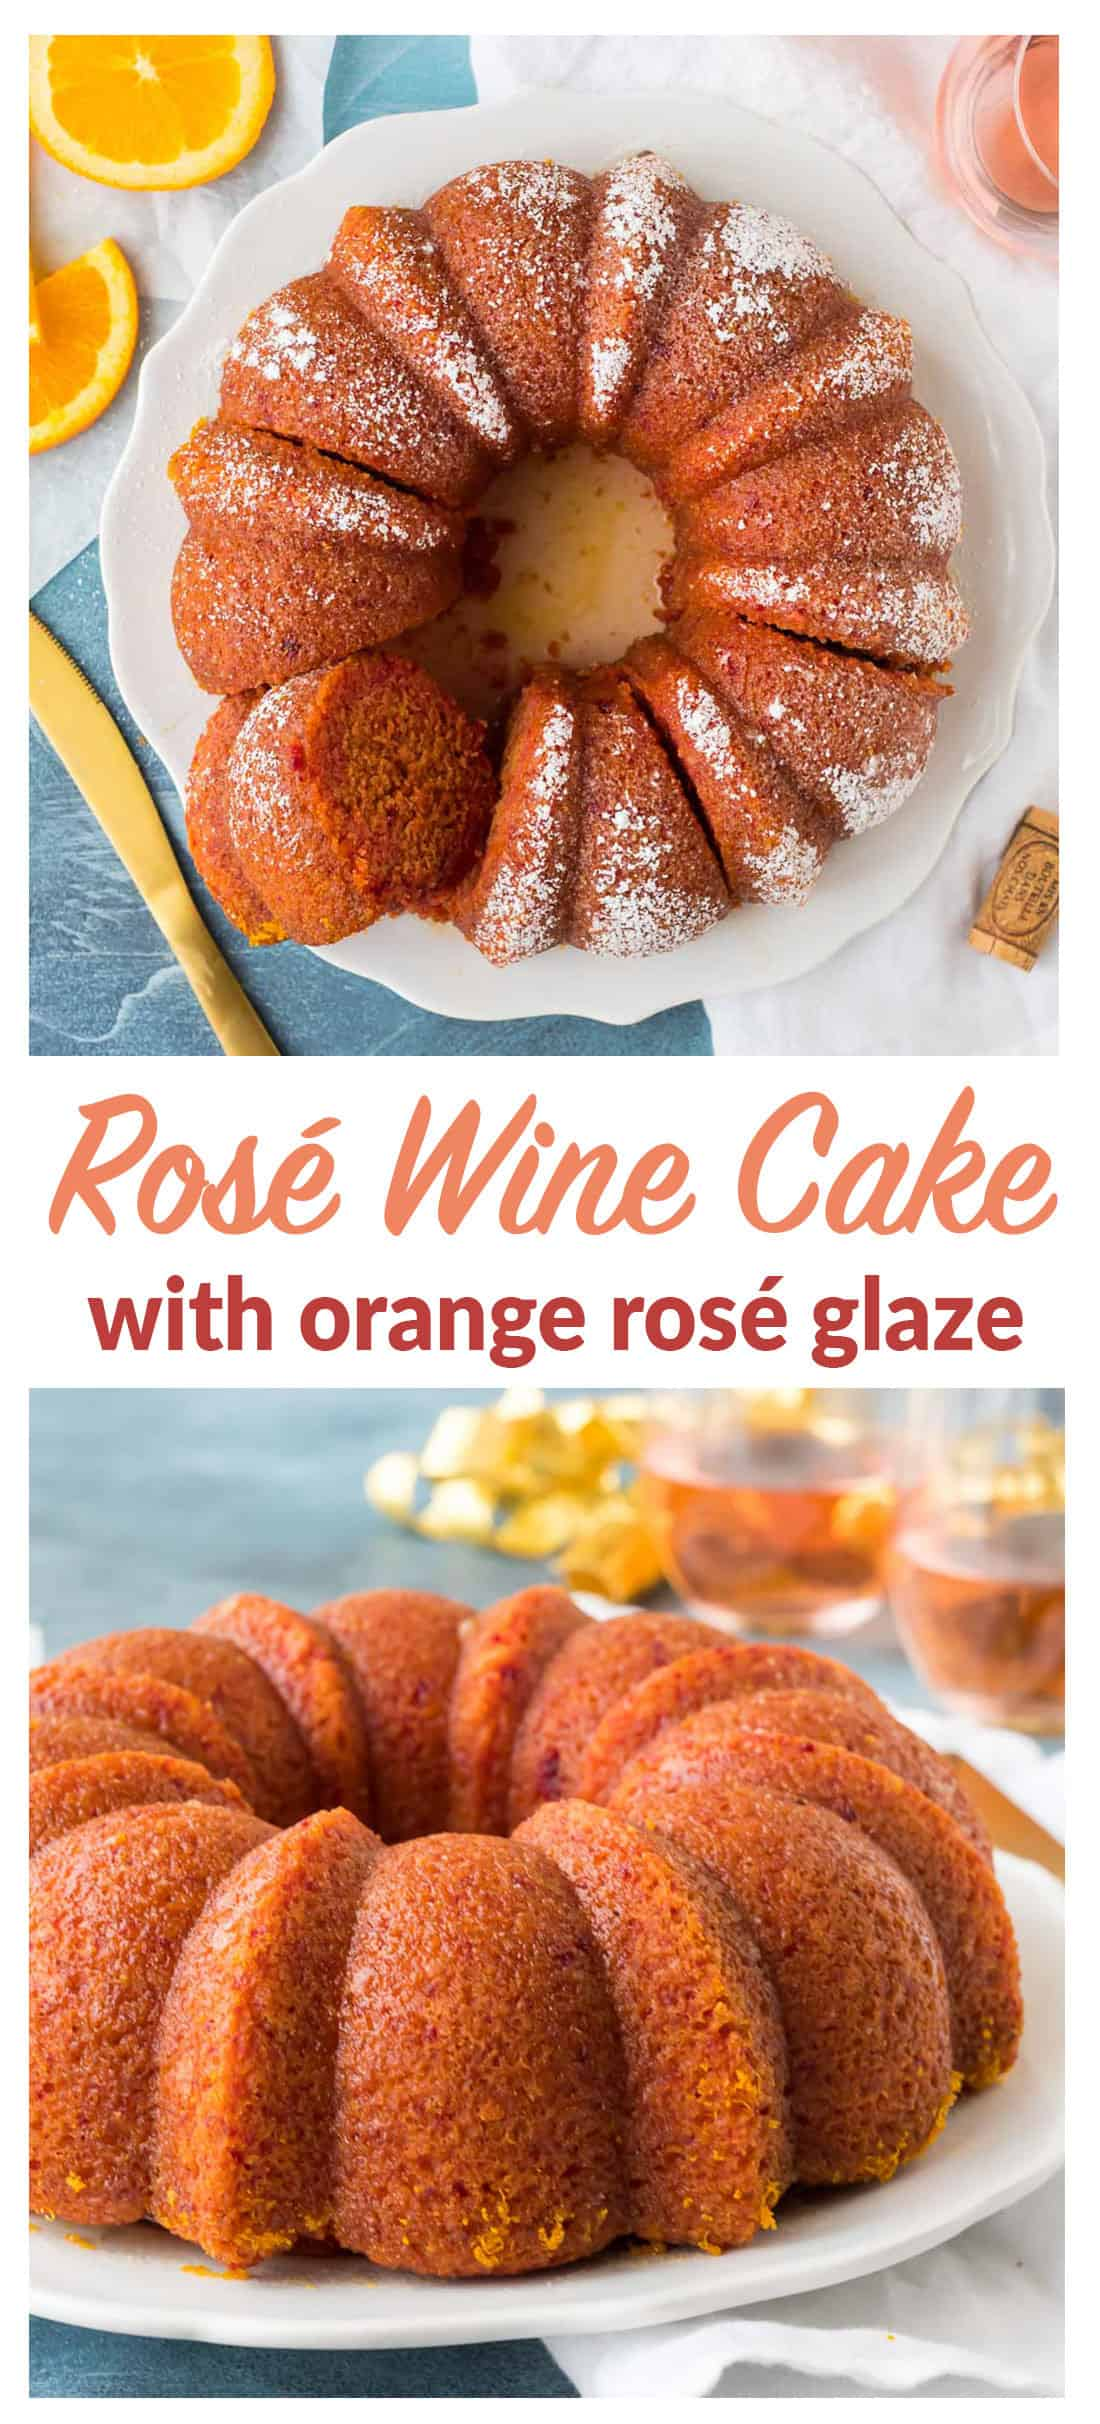 Pink Cake recipe from scratch! This moist, delicious cake gets its pretty pink color naturally from beets and a delicious orange rose wine syrup. Easy and elegant, this fun, girly cake is perfect for birthday party, bridal shower, or any time you are looking for ideas to make a celebration really special. #rose #birthday #pinkcake #pinkdessert